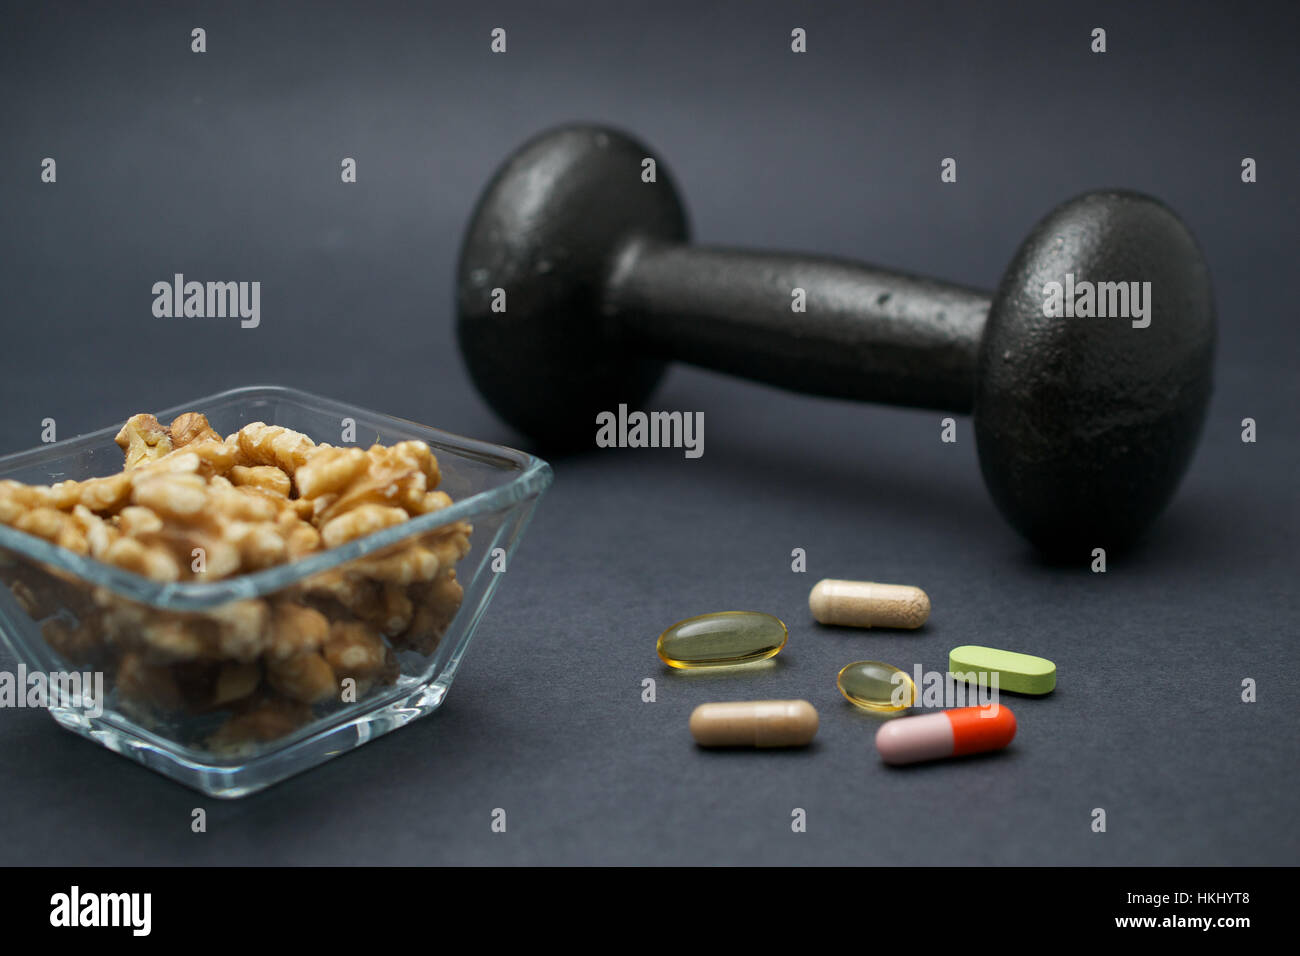 Dumbbell, walnuts and dietary supplements on dark background: fitness and muscle building concept. - Stock Image